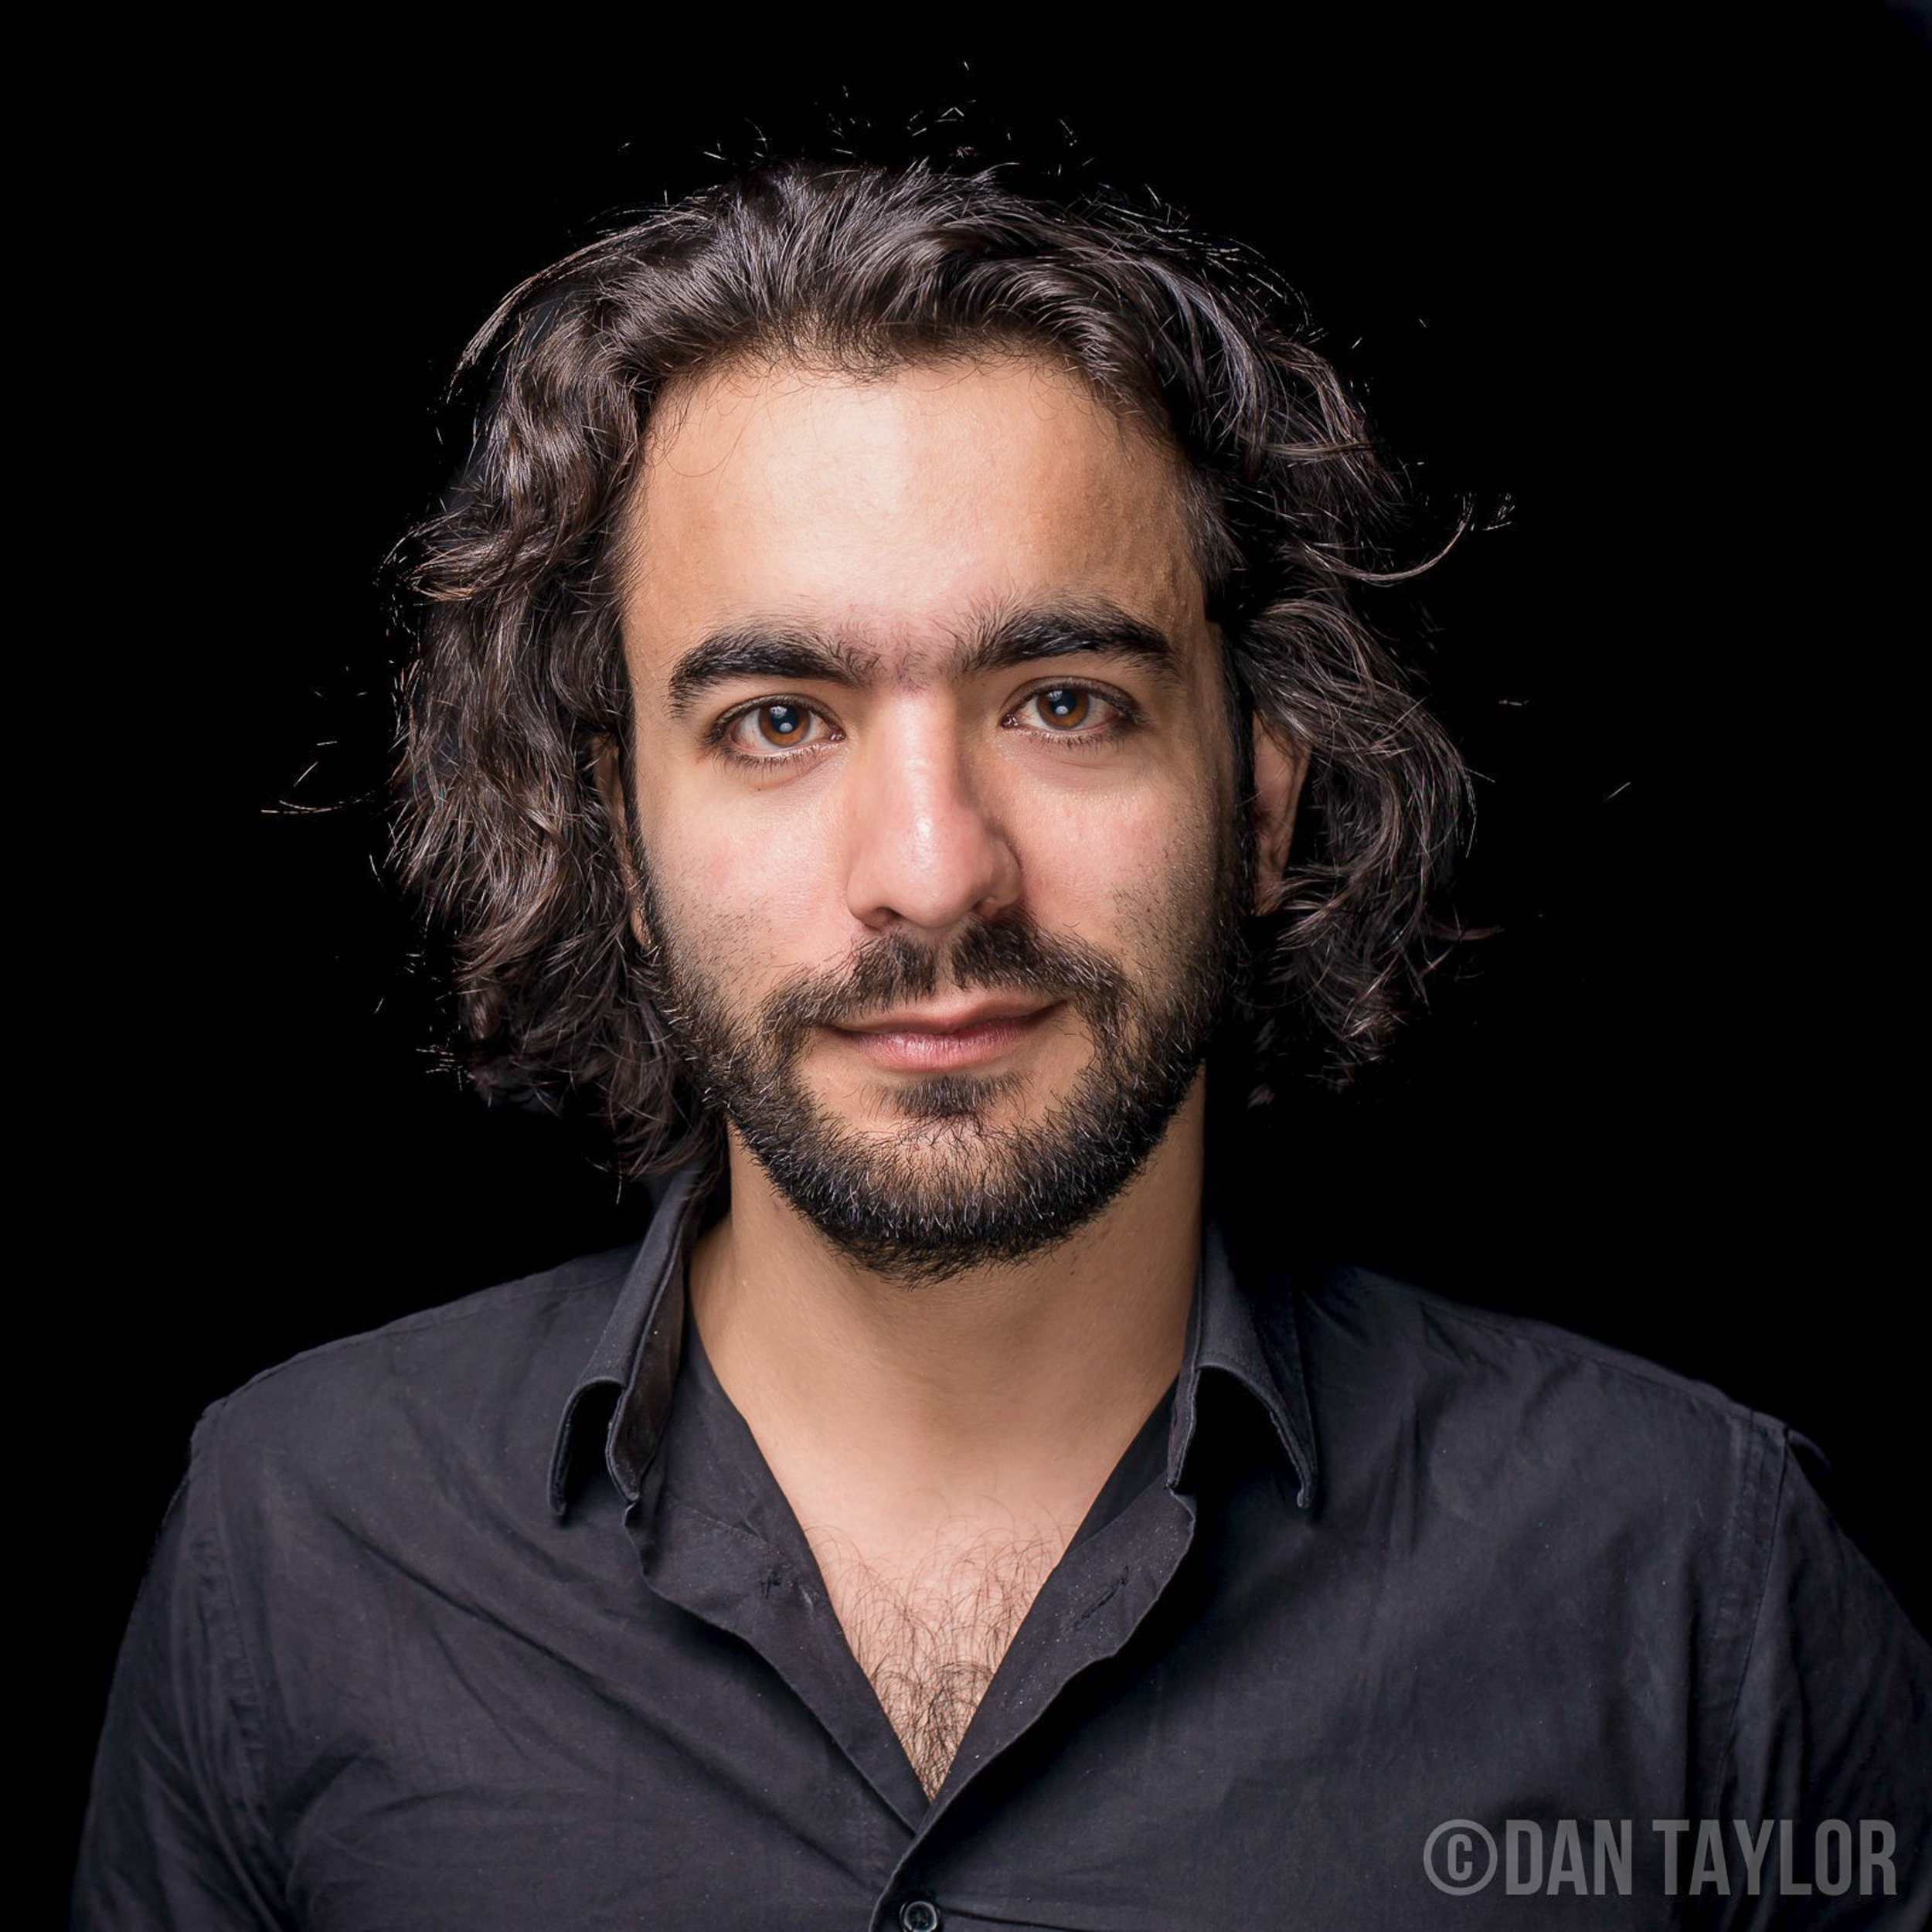 "<a href=""https://www.linkedin.com/in/ramzirizk"" target=""_blank""><i><b>Ramzi Rizk</i></b></a><br>Co-Founder & <br>CTO<b><br>EyeEm</b>"